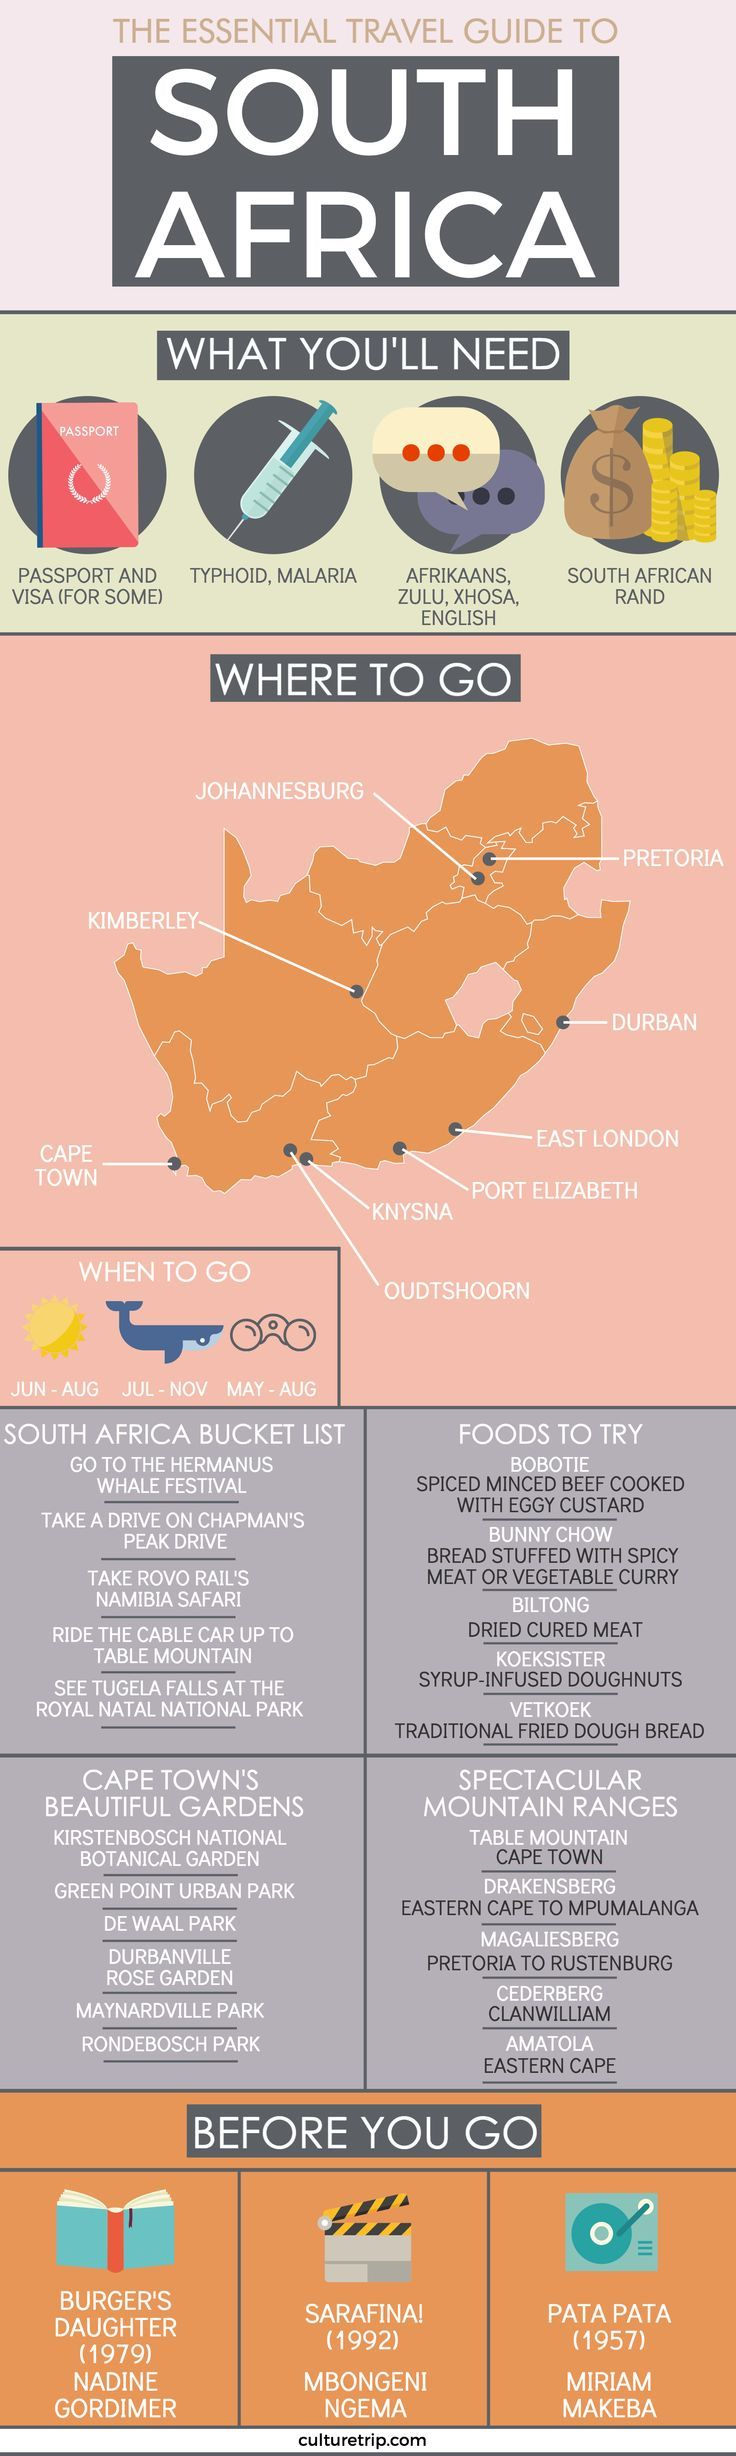 The Ultimate Travel Guide To South Africa. All the essential information you need before heading off to explore South Africa! (Favorite Spaces And Places)